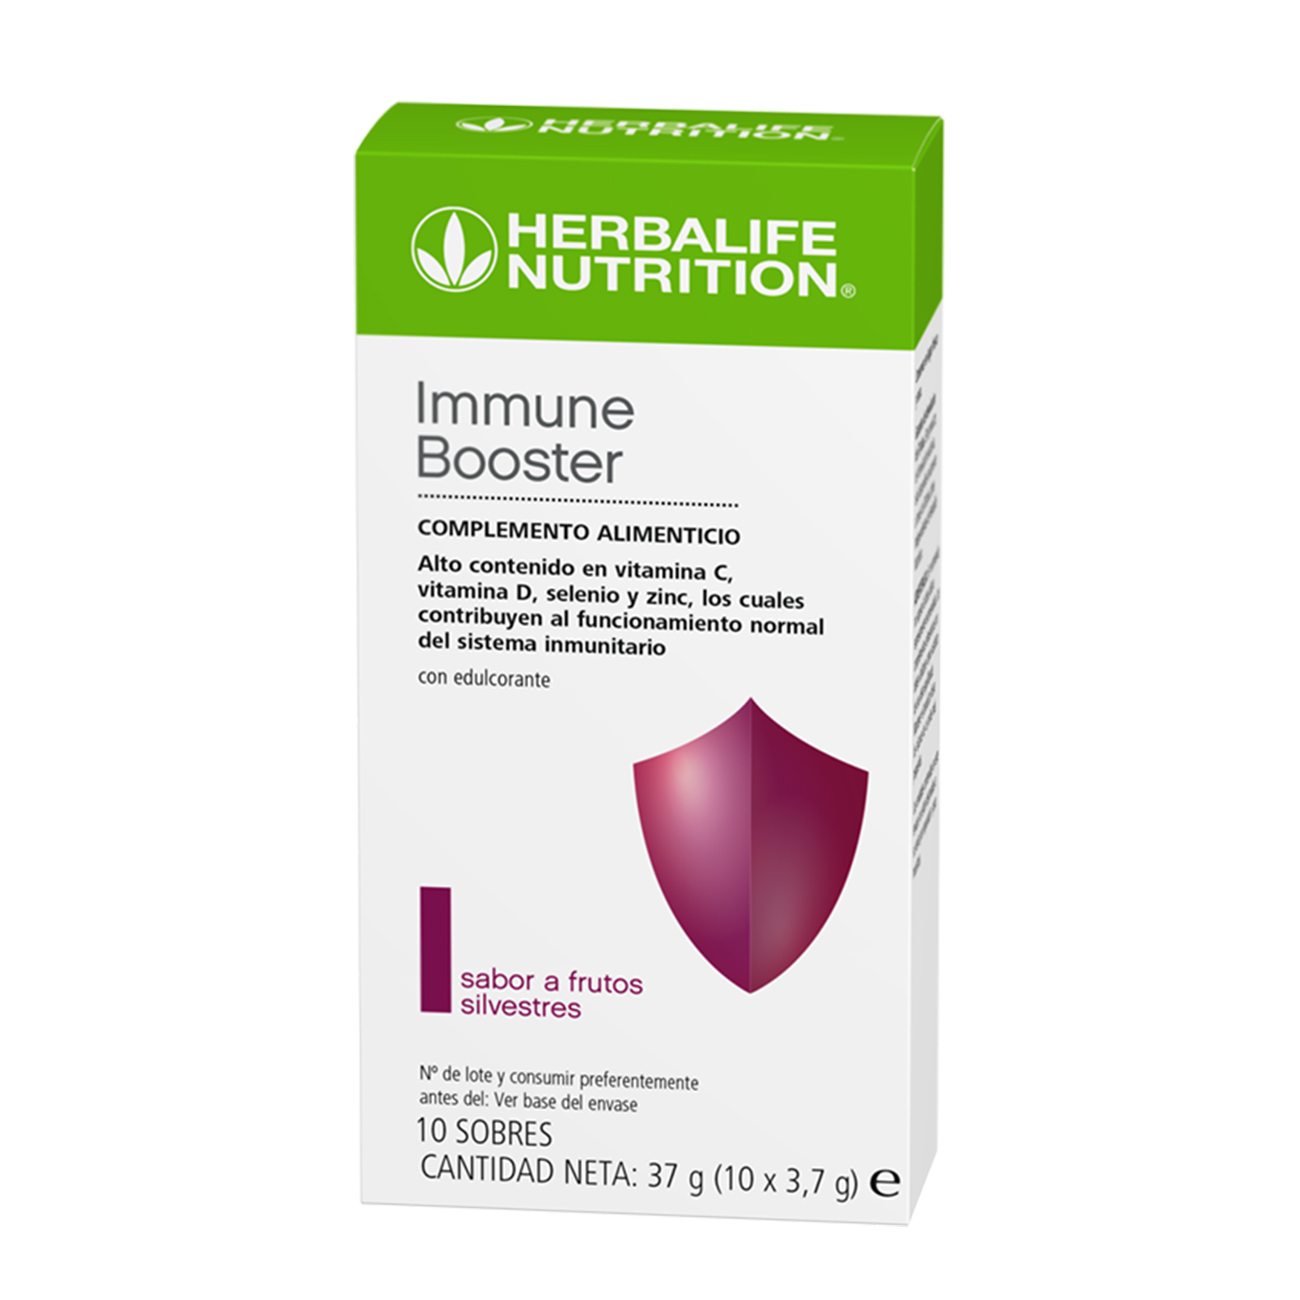 Immune Booster  product shot